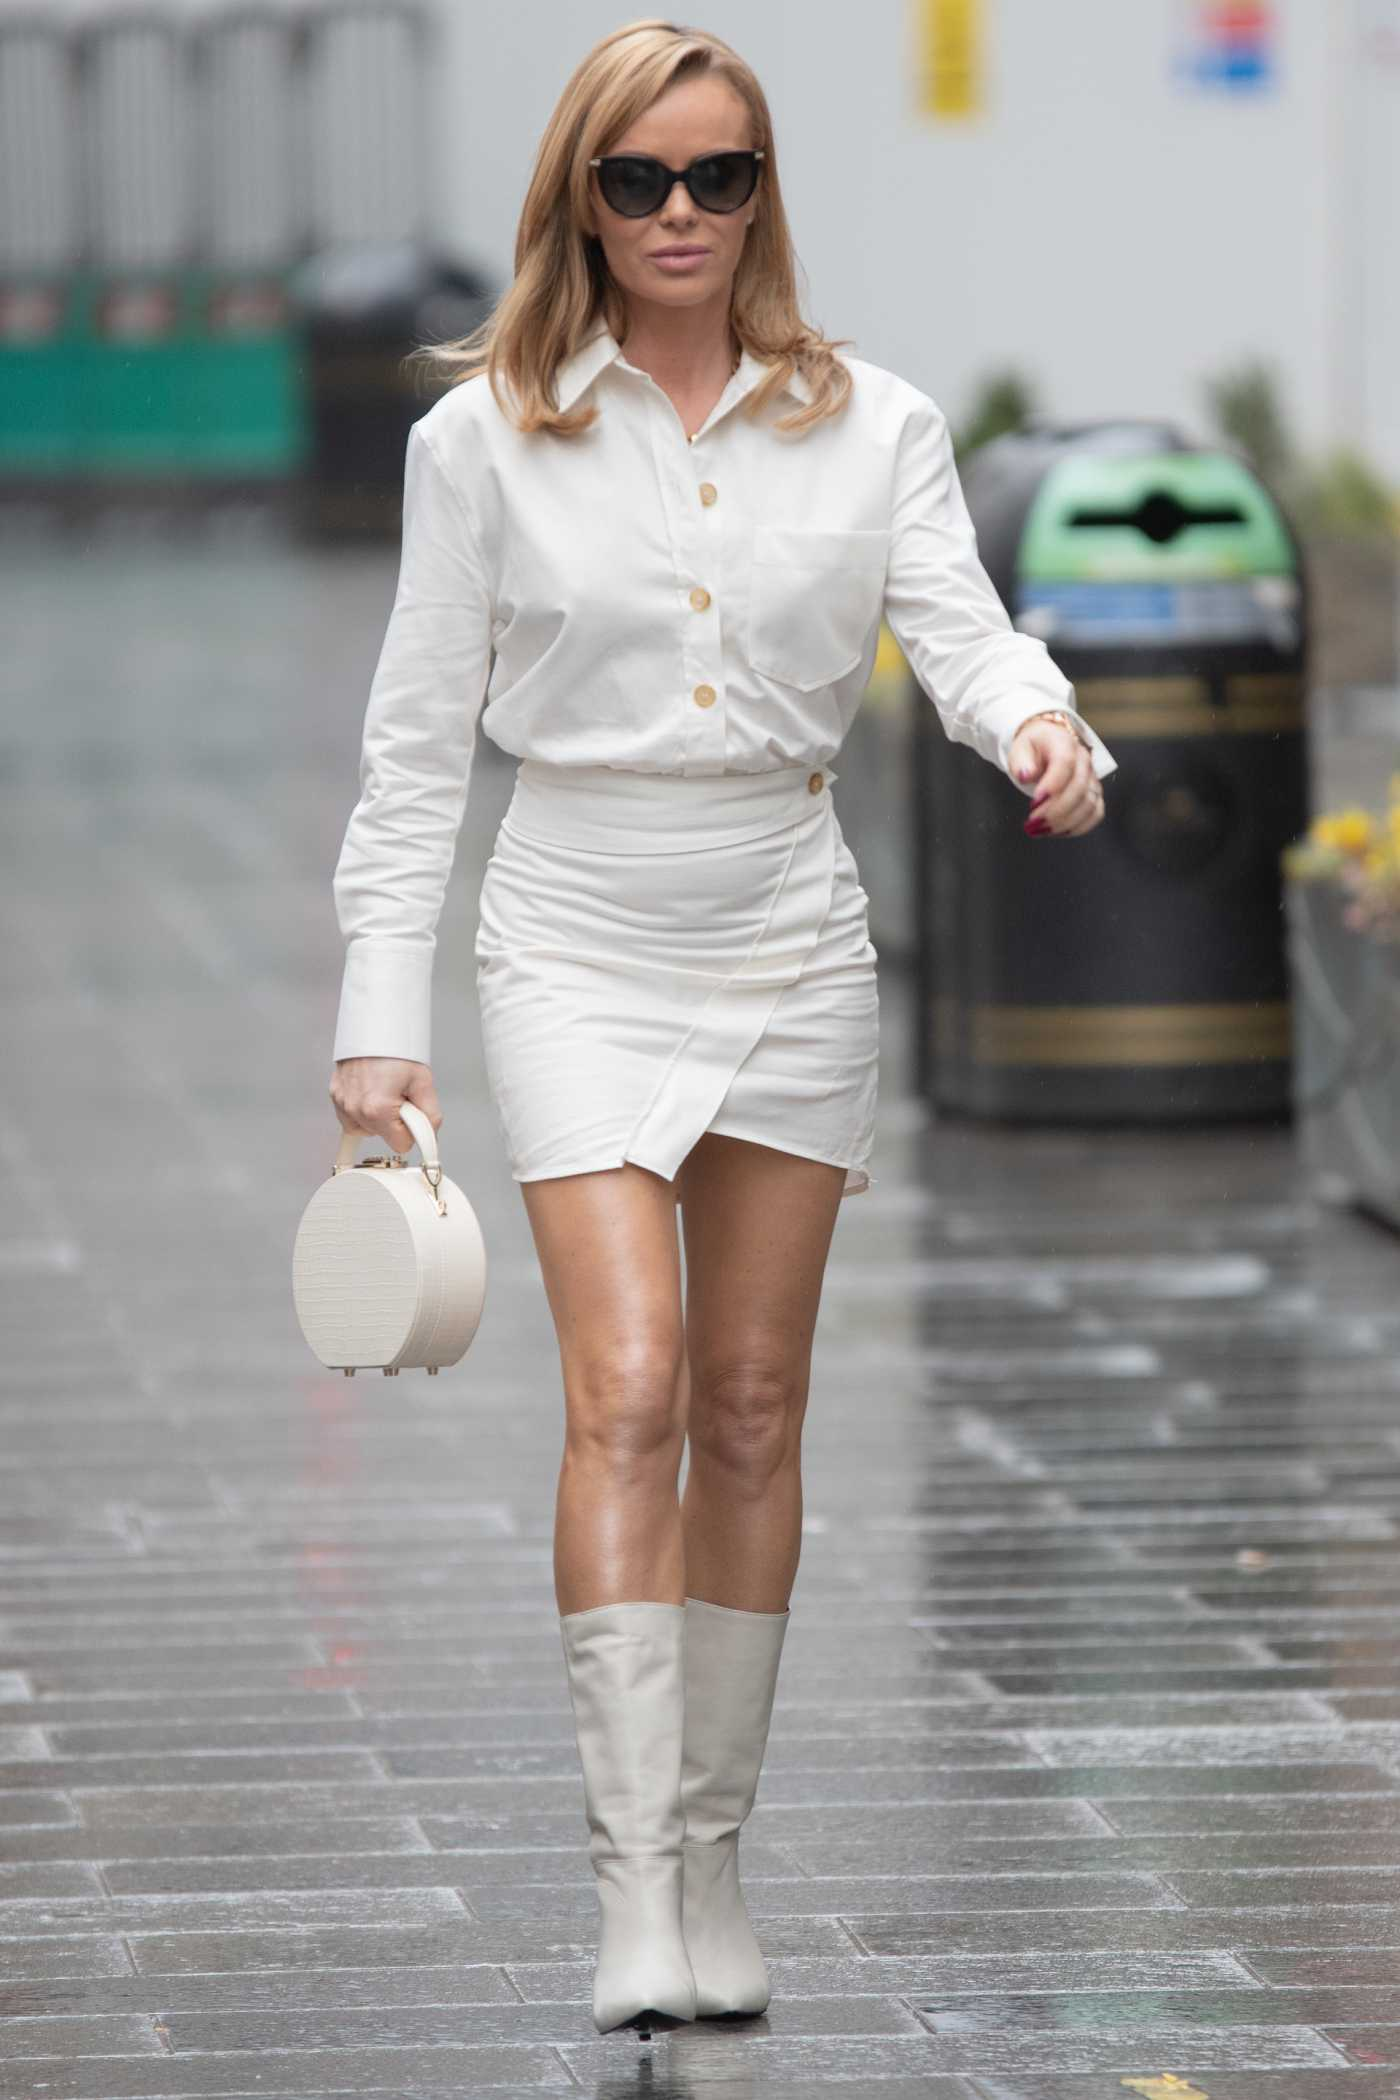 Amanda Holden in a White Mini Skirt Arrives at the Heart Radio in London 02/25/2021